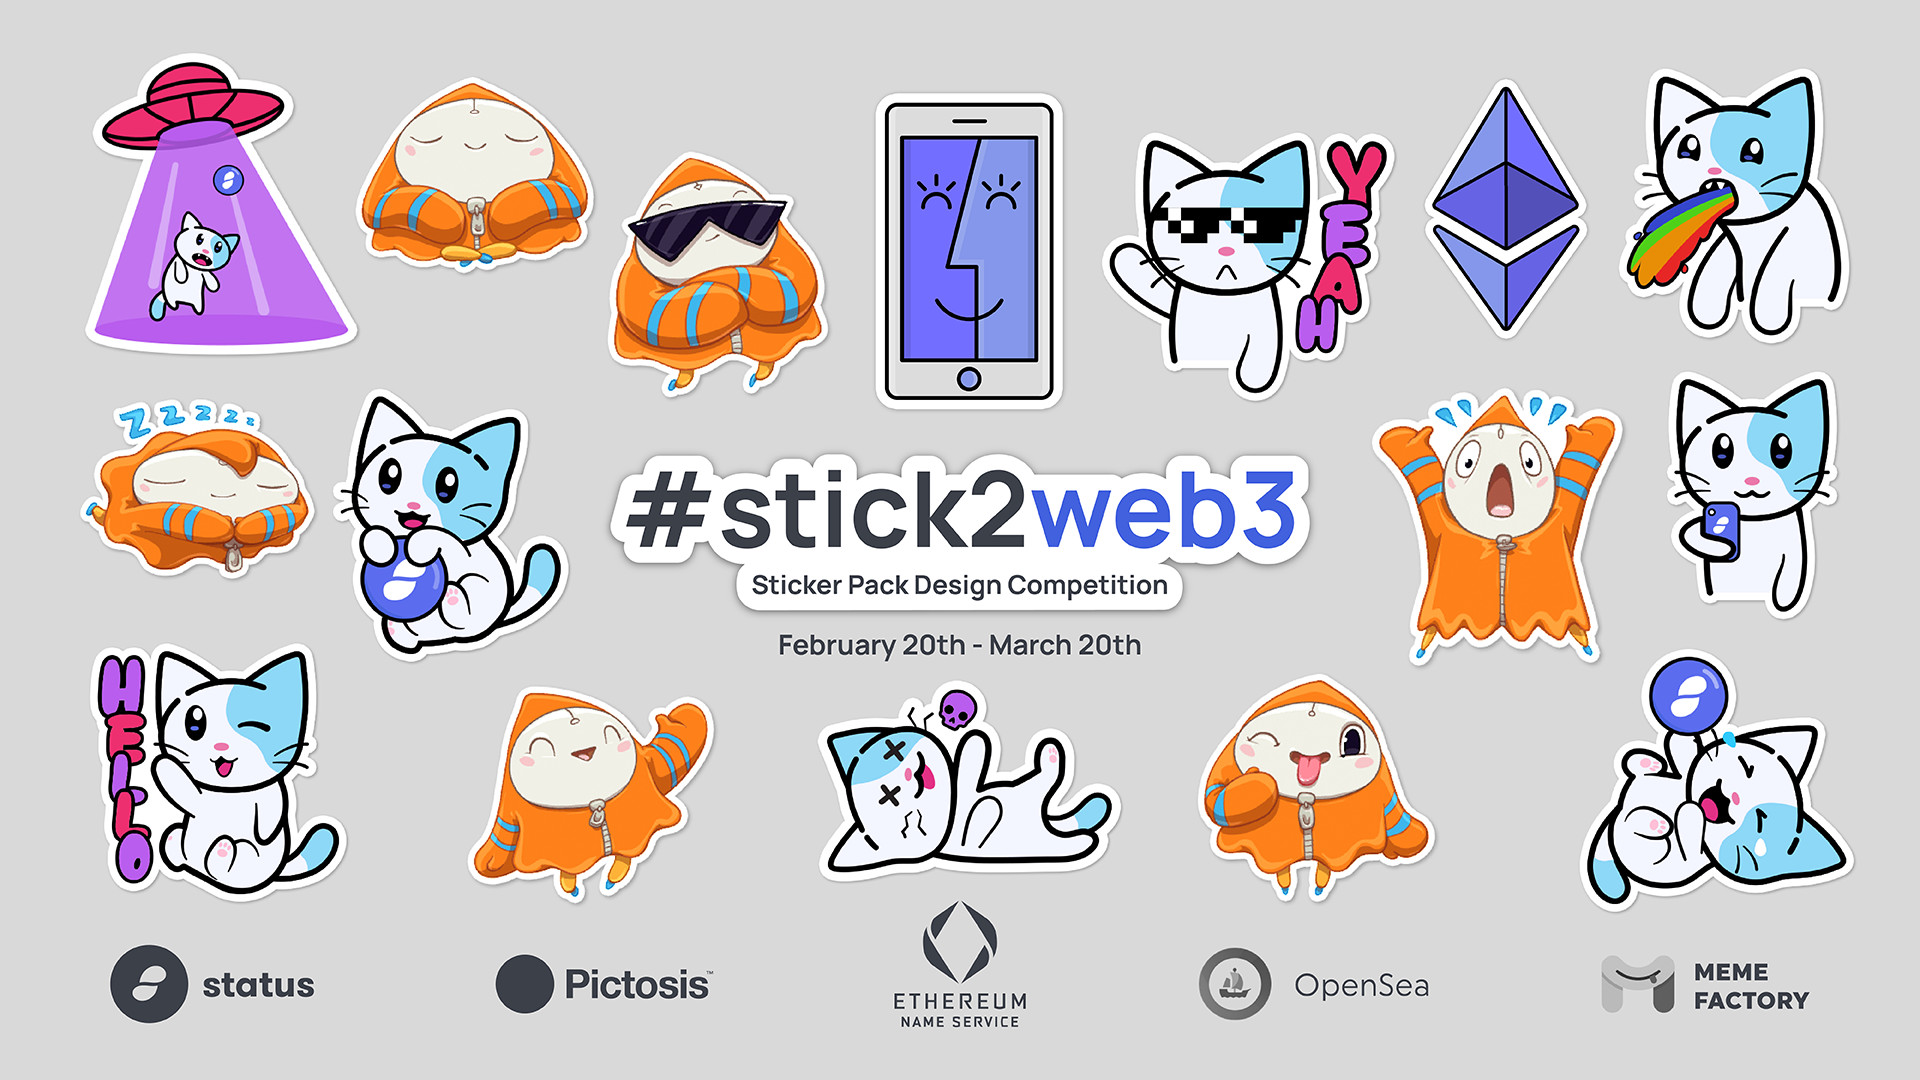 Announcing the #stick2web3 Sticker Market Competition with over $1,500 in Prizes